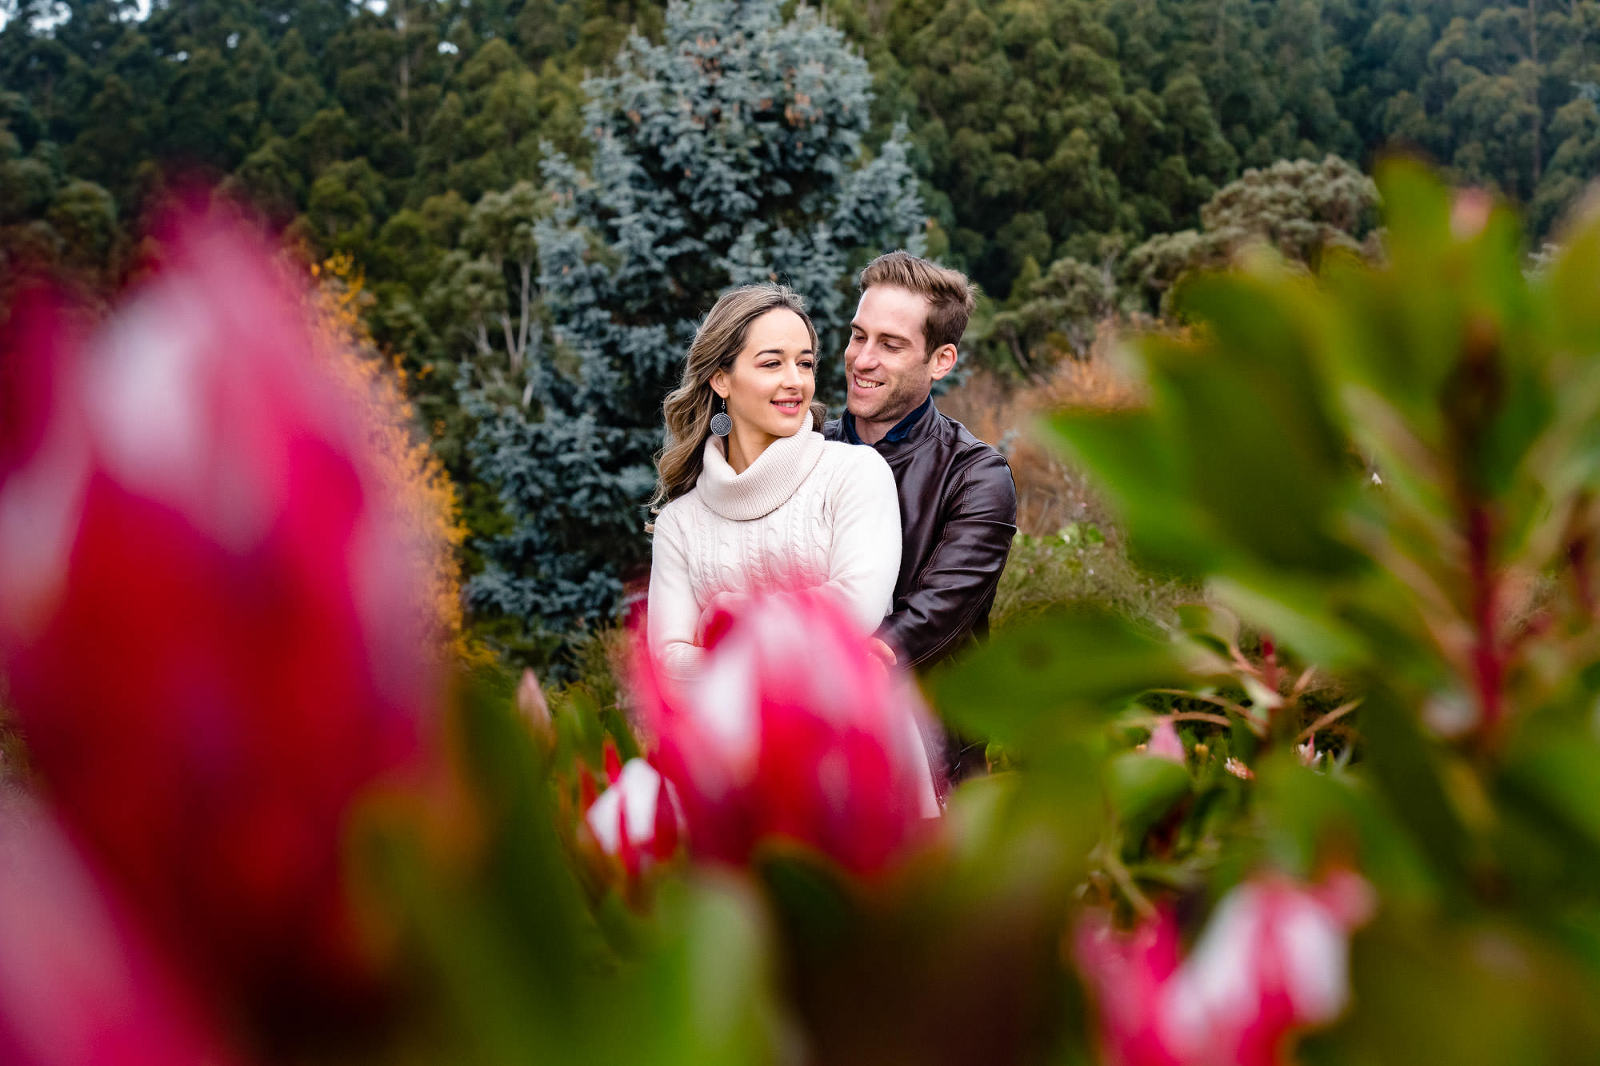 colourful couples photography session taken in the dandenong ranges